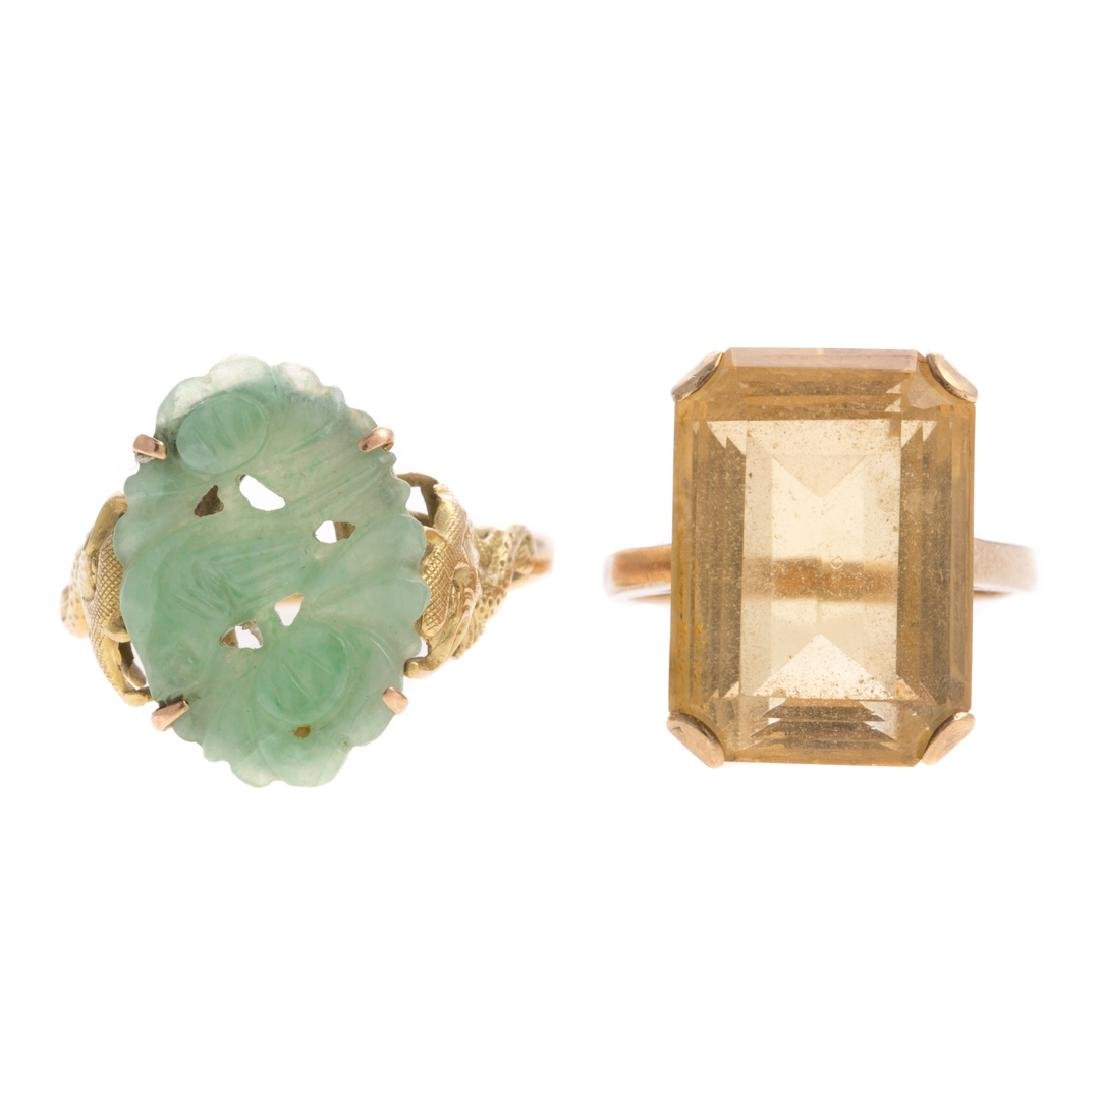 A Pair of Lady's Gemstone Rings in Gold